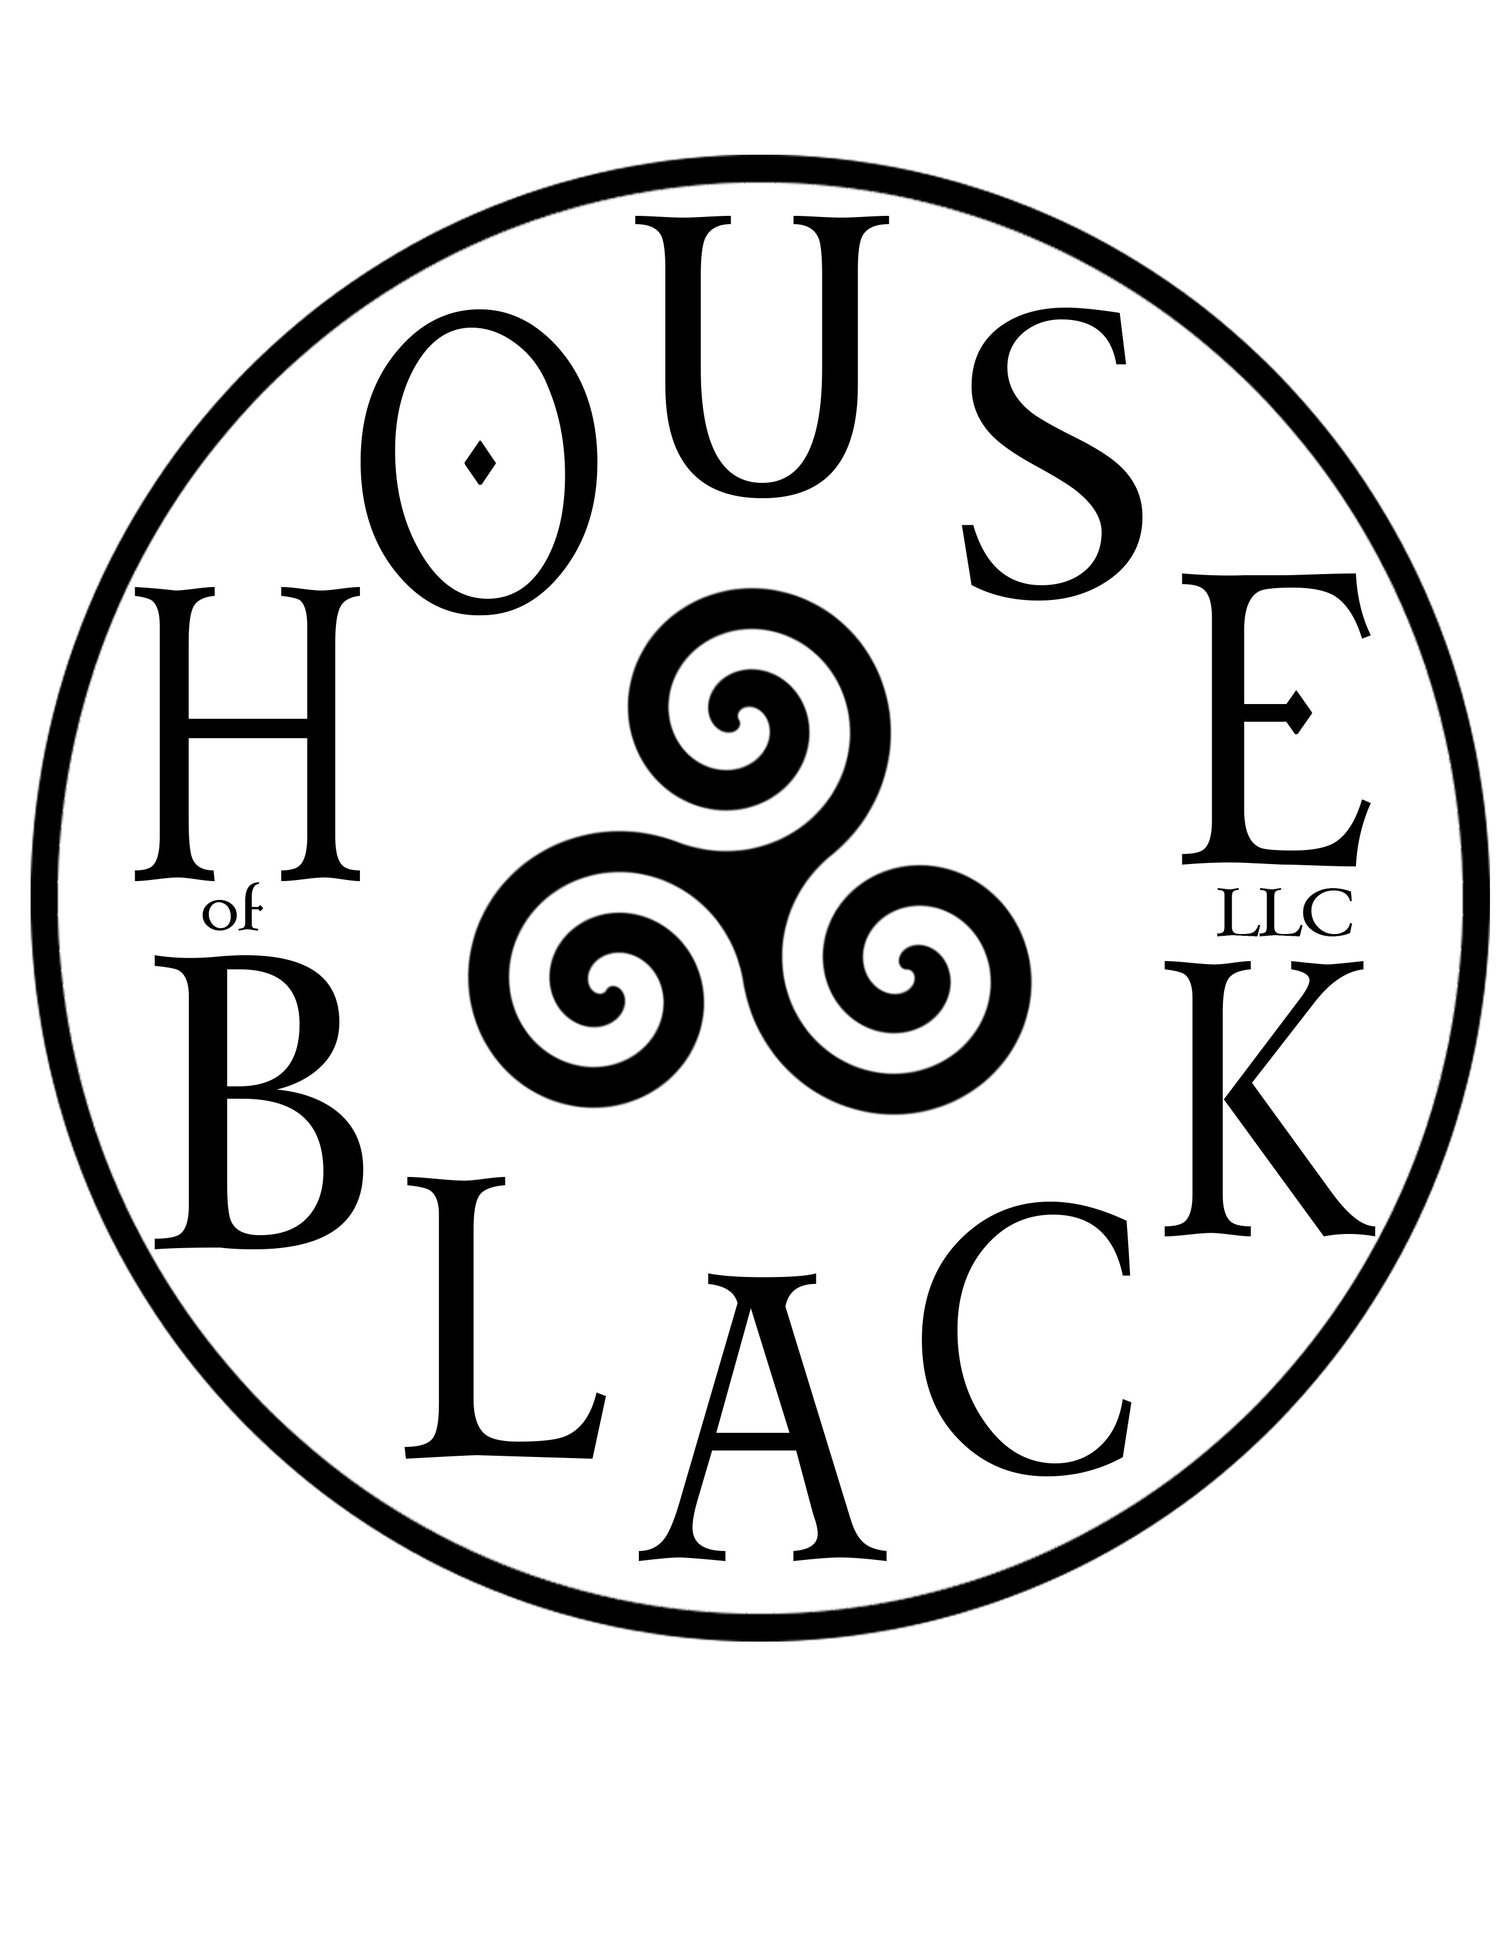 House of Black, LLC